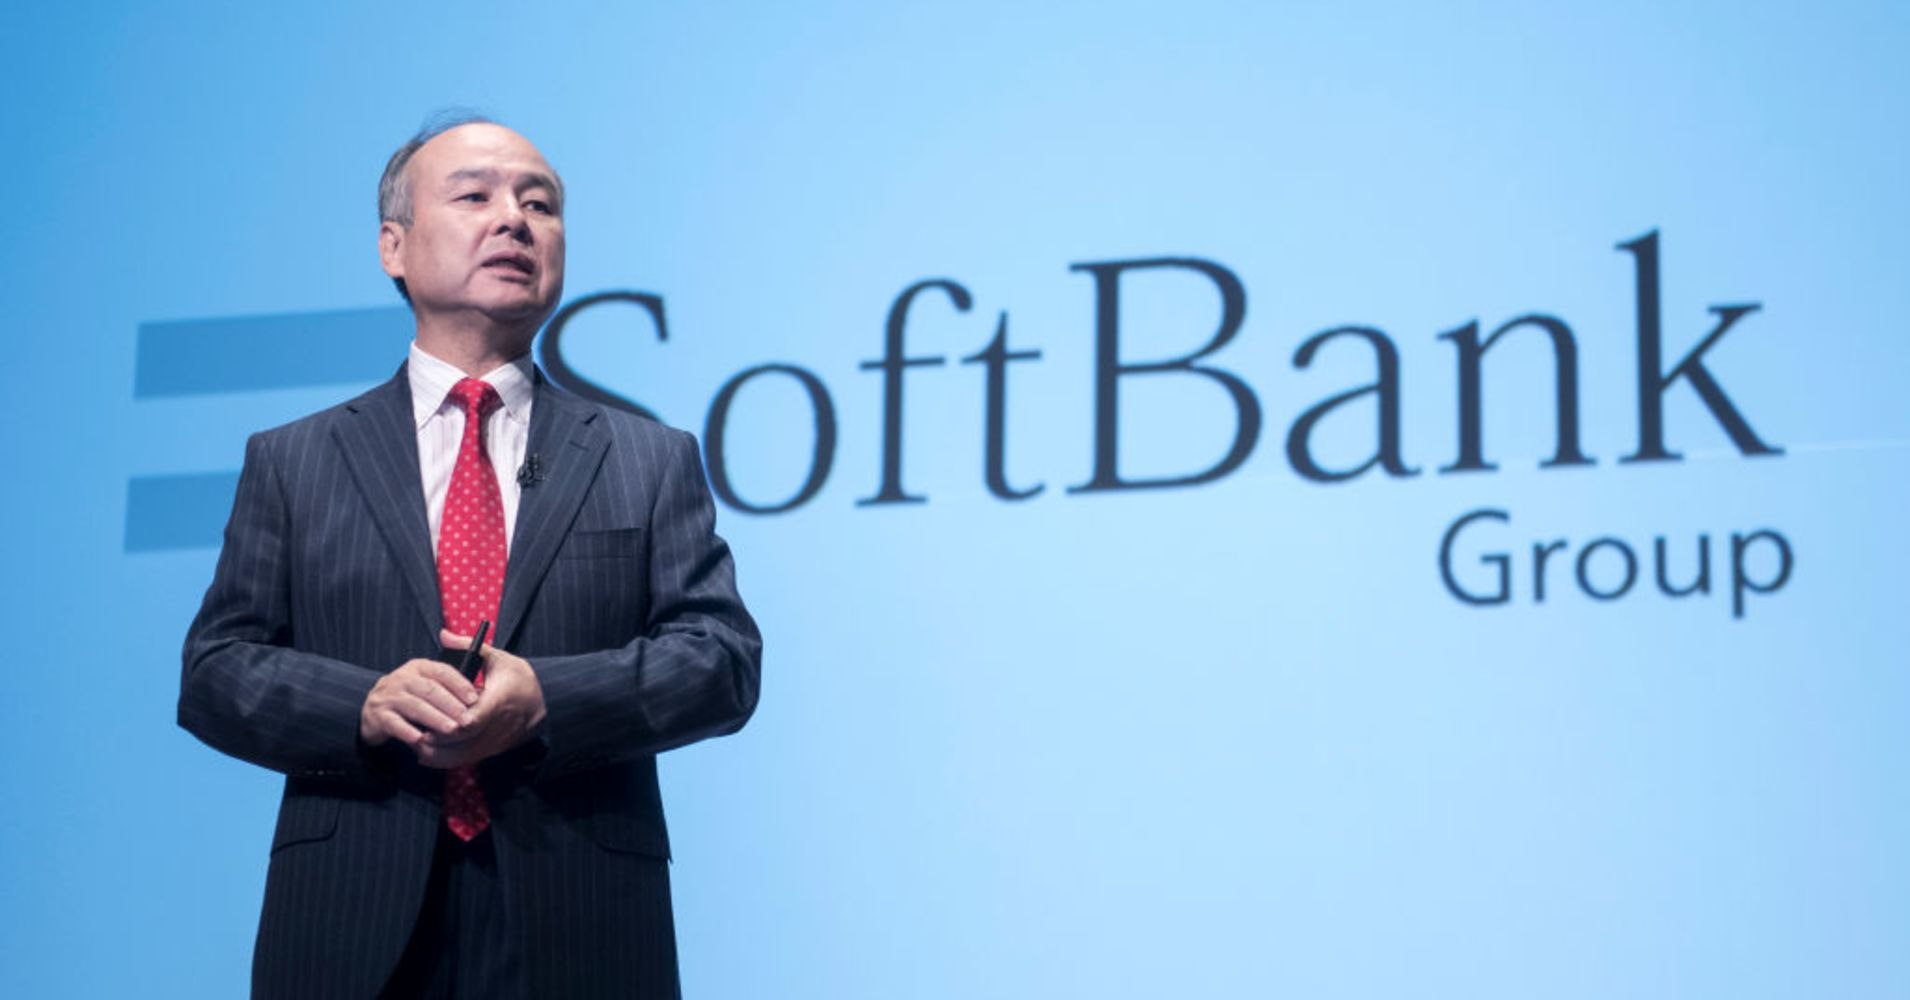 SoftBank to invest $1 billion for a 6% stake in payments firm Wirecard